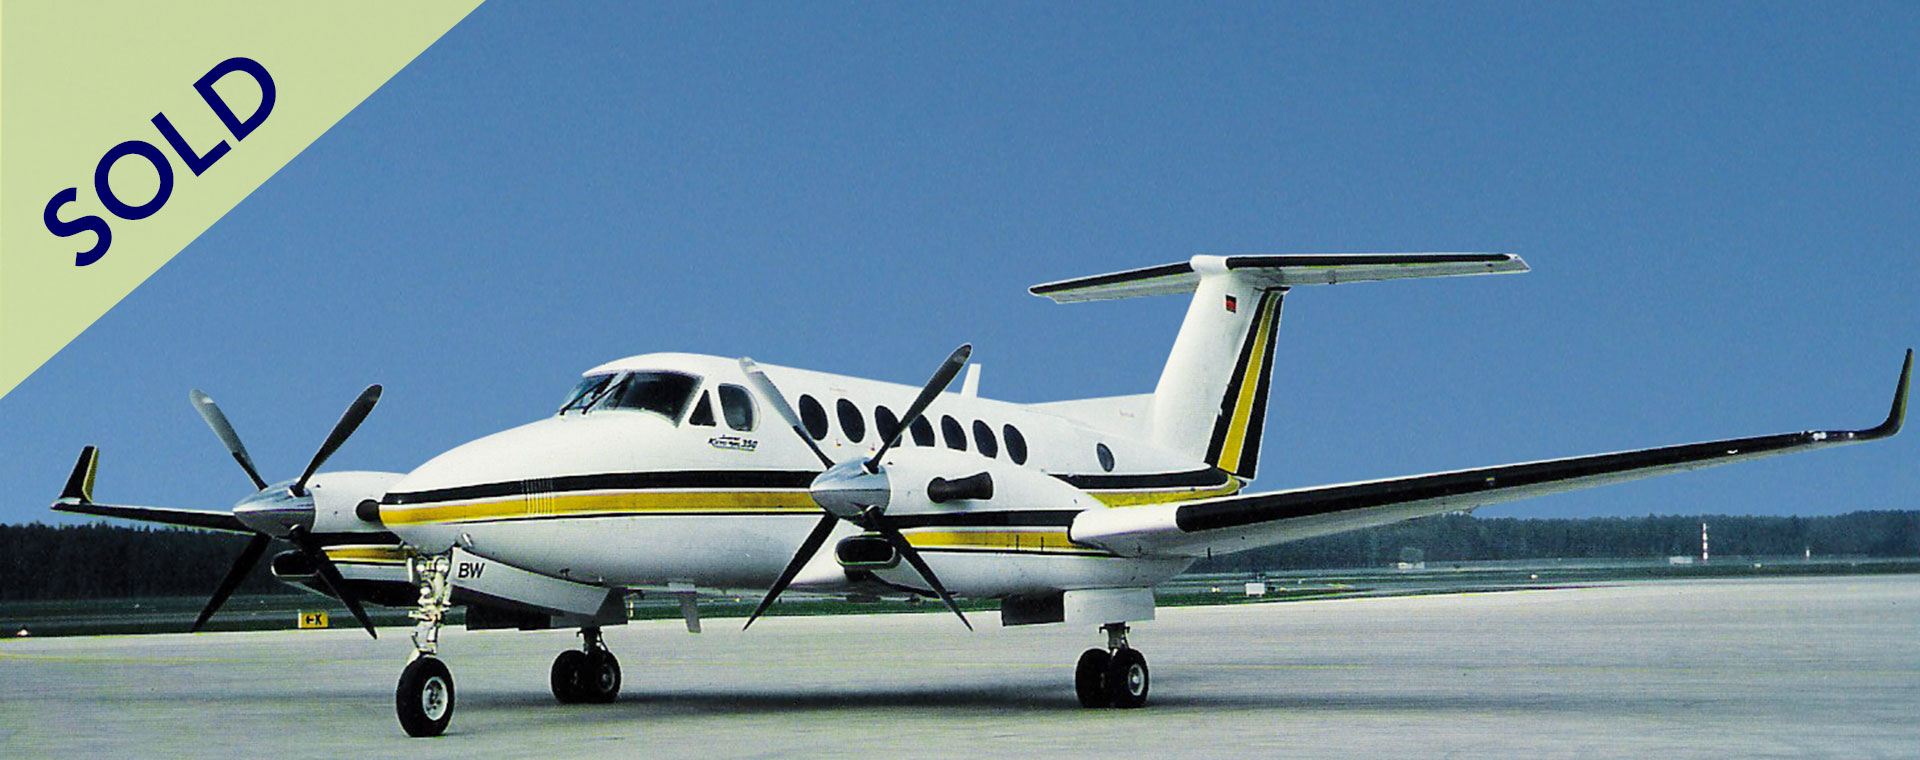 King Air 350 SOLD - Aero-Dienst - Aircraft Sales